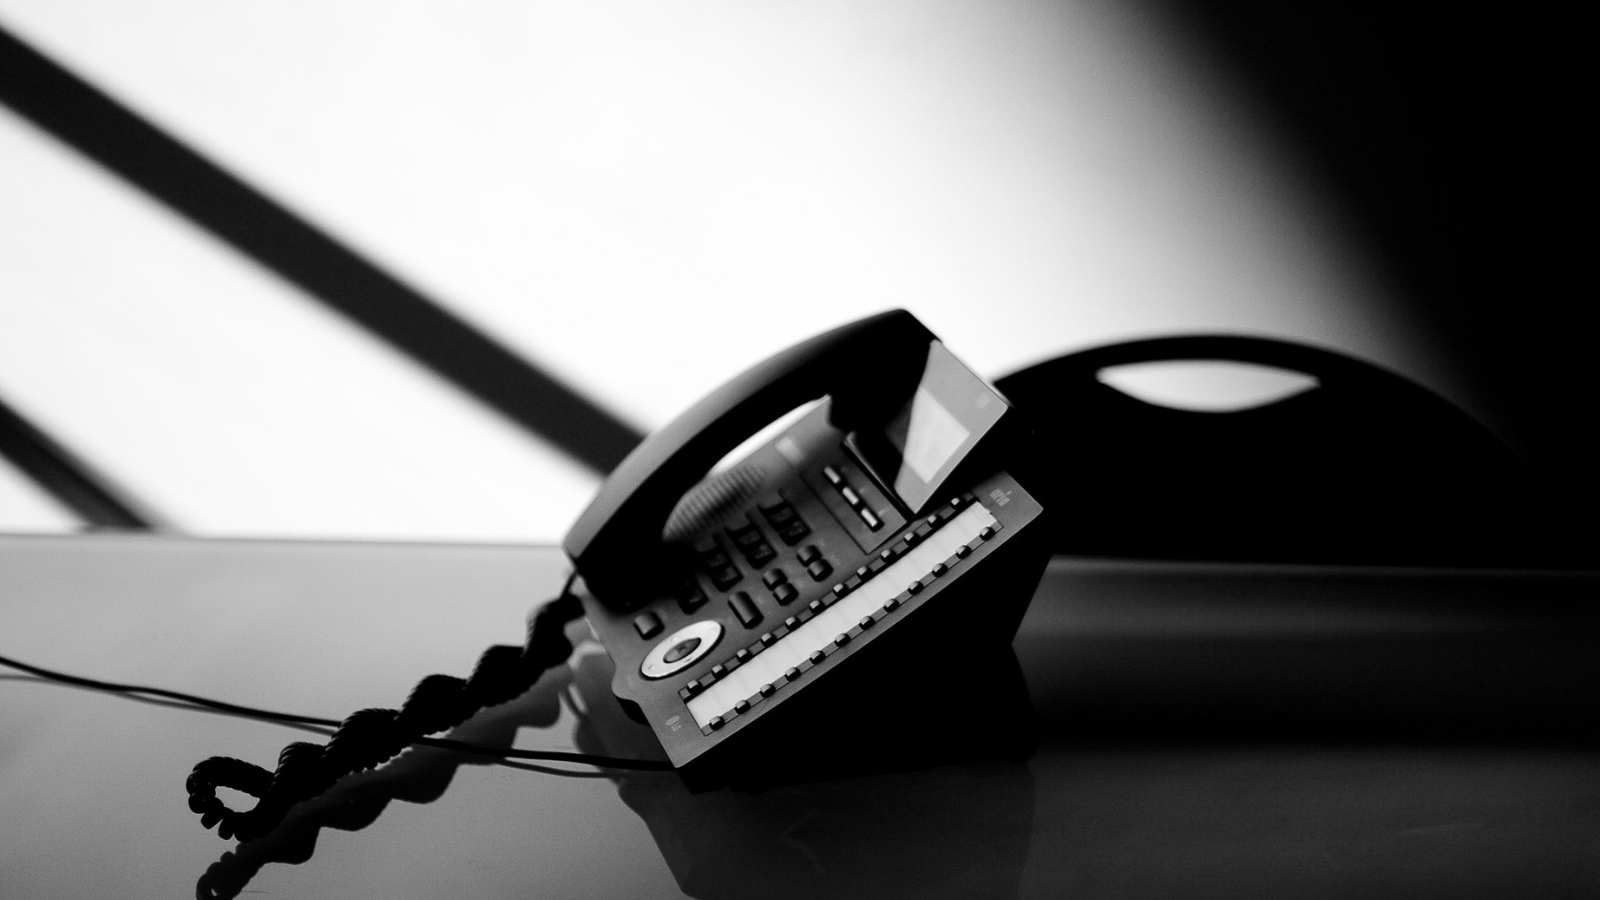 Cost comparison of VoIP phone vs traditional phone line